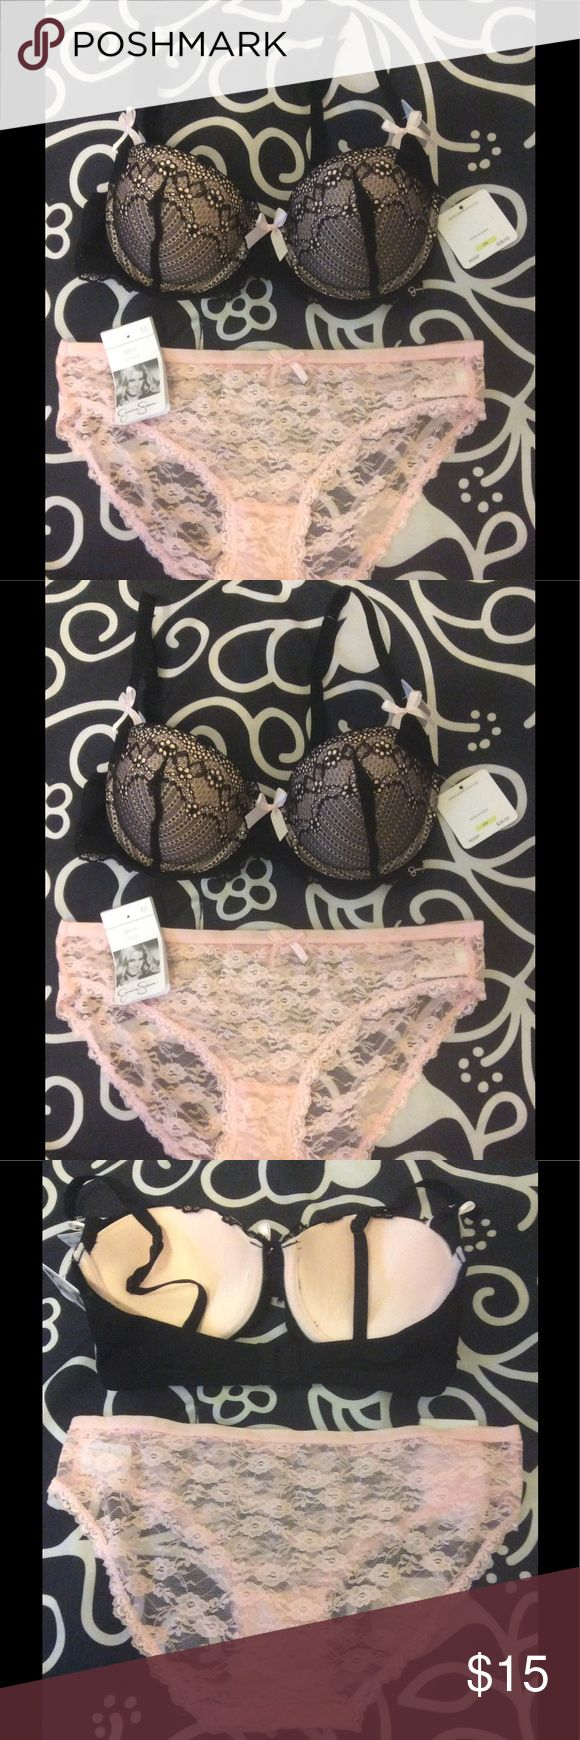 Jessica Simpson Lacy Bow Bra w/ free panty 👙Bra Details: 90% nylon, 10% spandex👙Panties: size M 90% nylon, 10% spandex 👙Free size S thong in dark pink available if size M shown is too big. Please specify in the comments if you would like the alternate gift with purchase in size S. Jessica Simpson Intimates & Sleepwear Bras